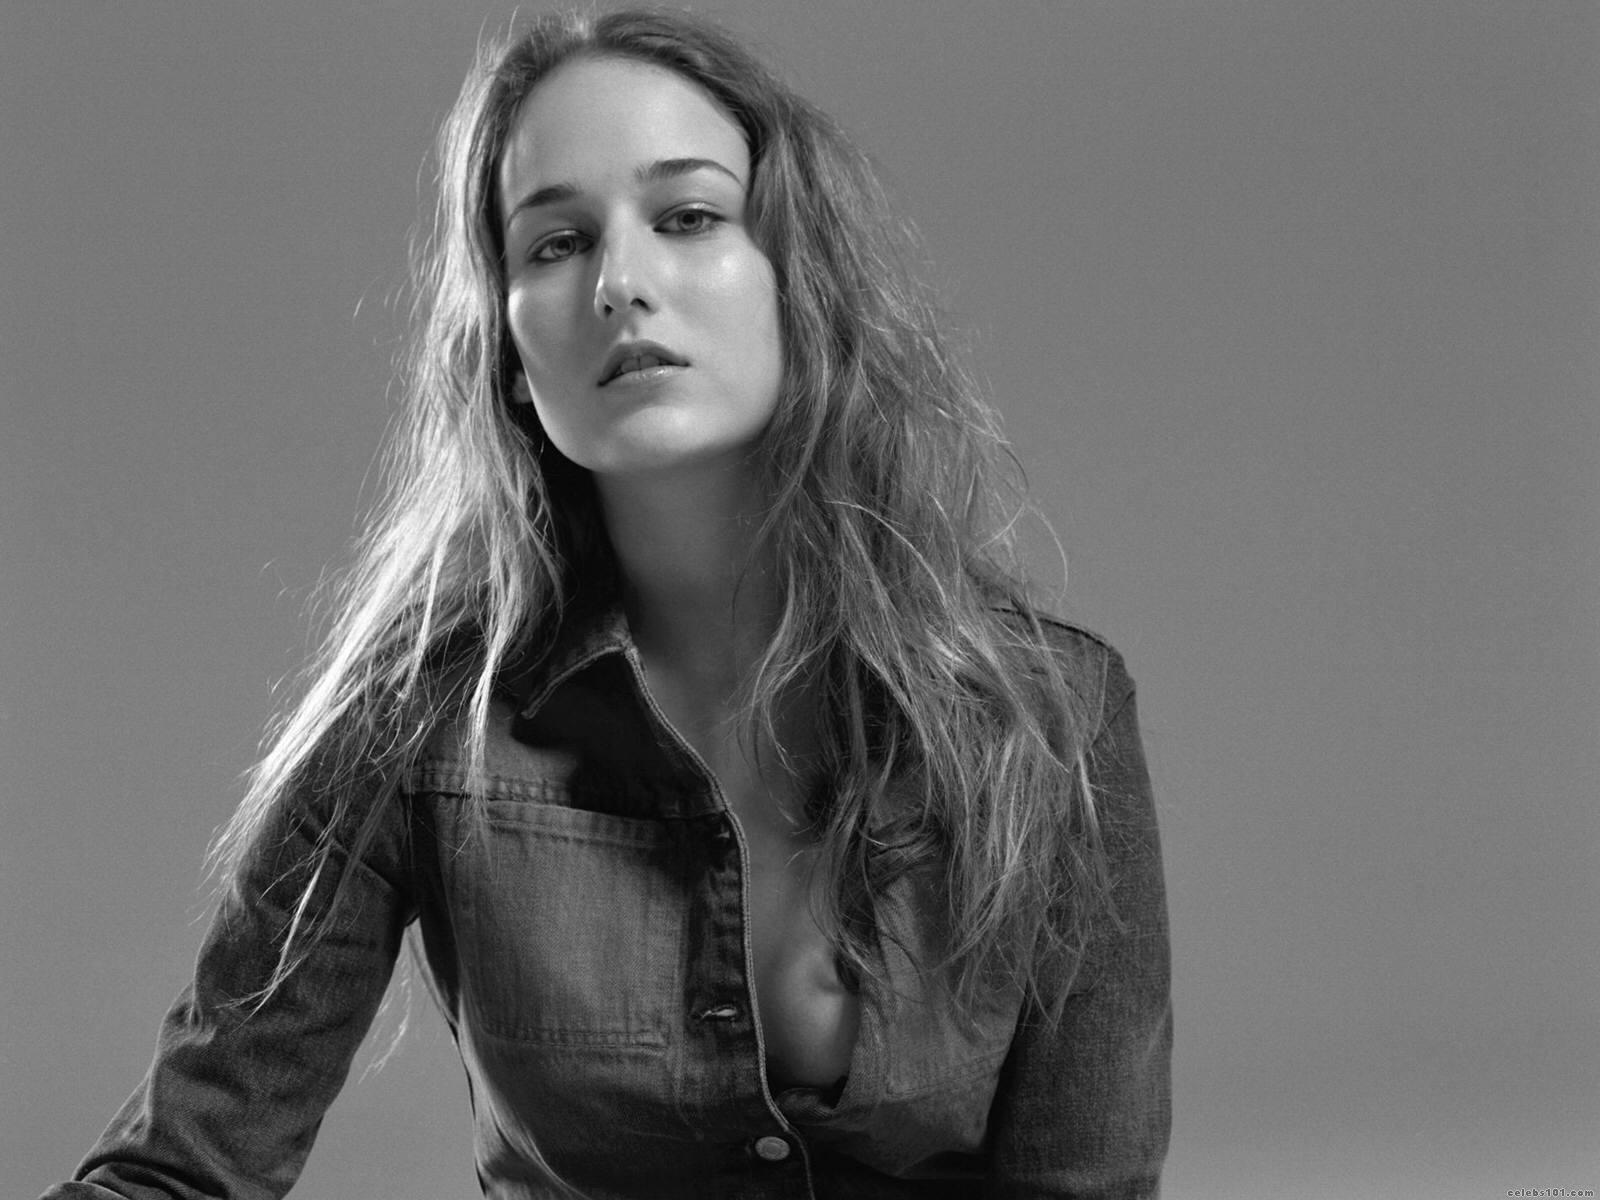 High Quality Wallpaper Size Leelee Sobieski